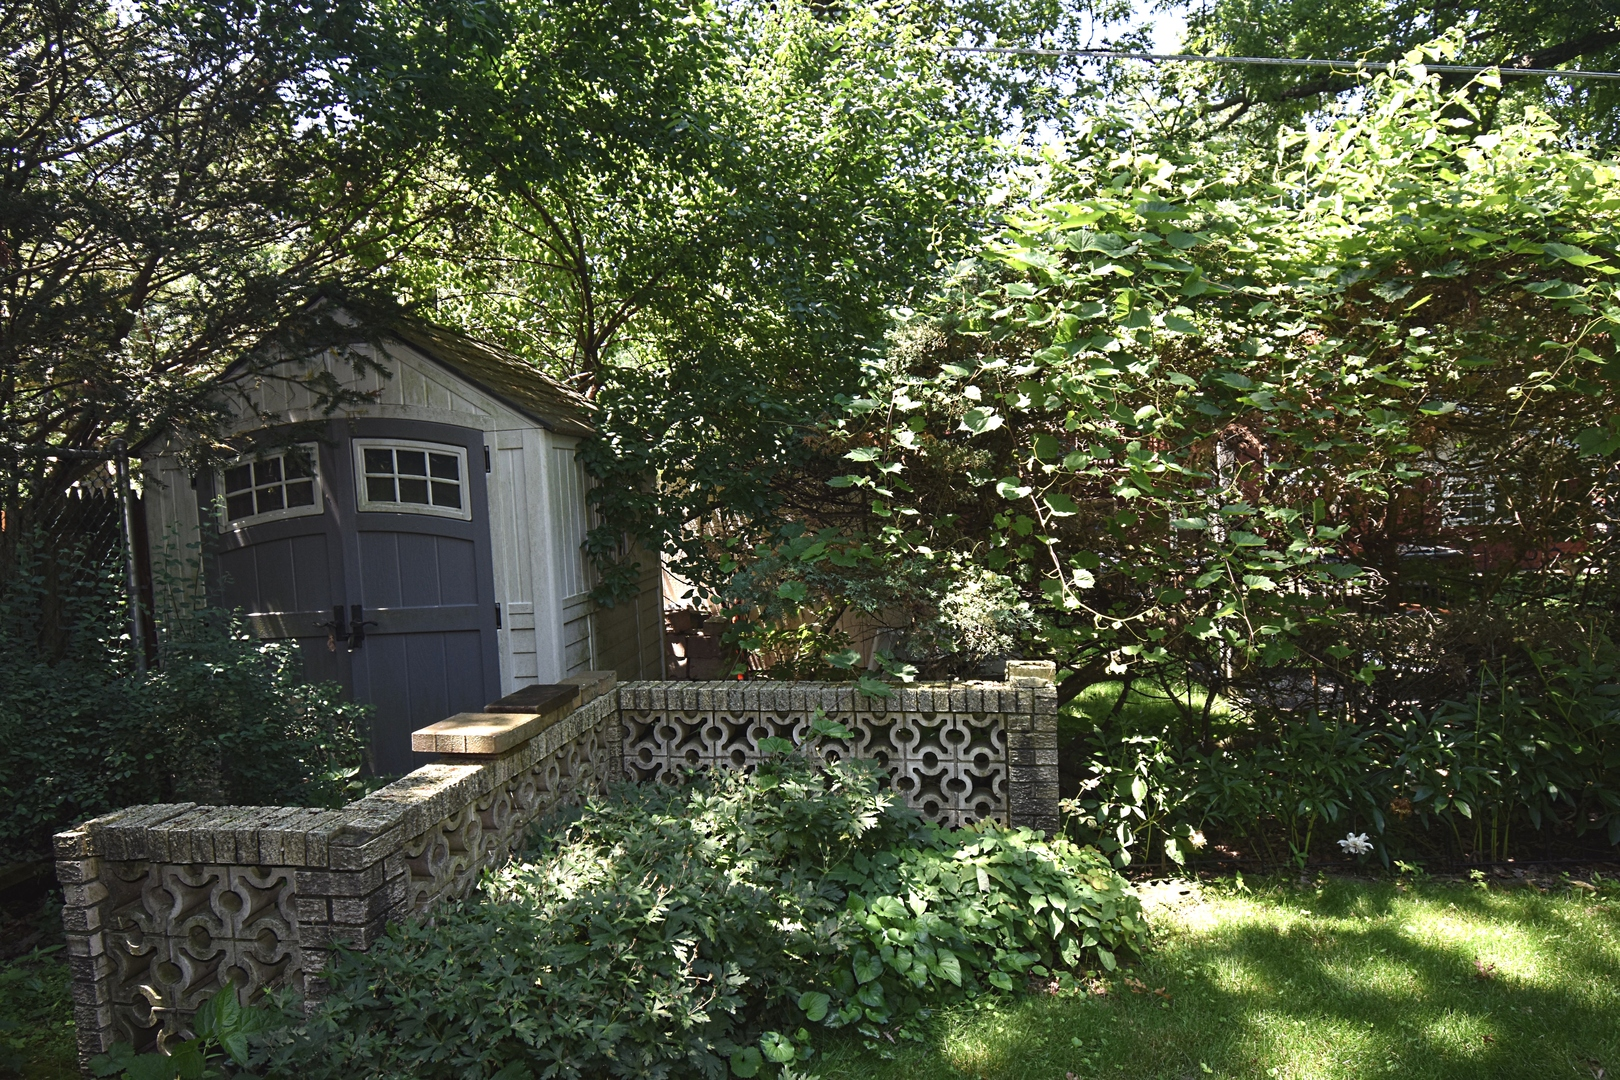 413 Forest, Willow Springs, Illinois, 60480